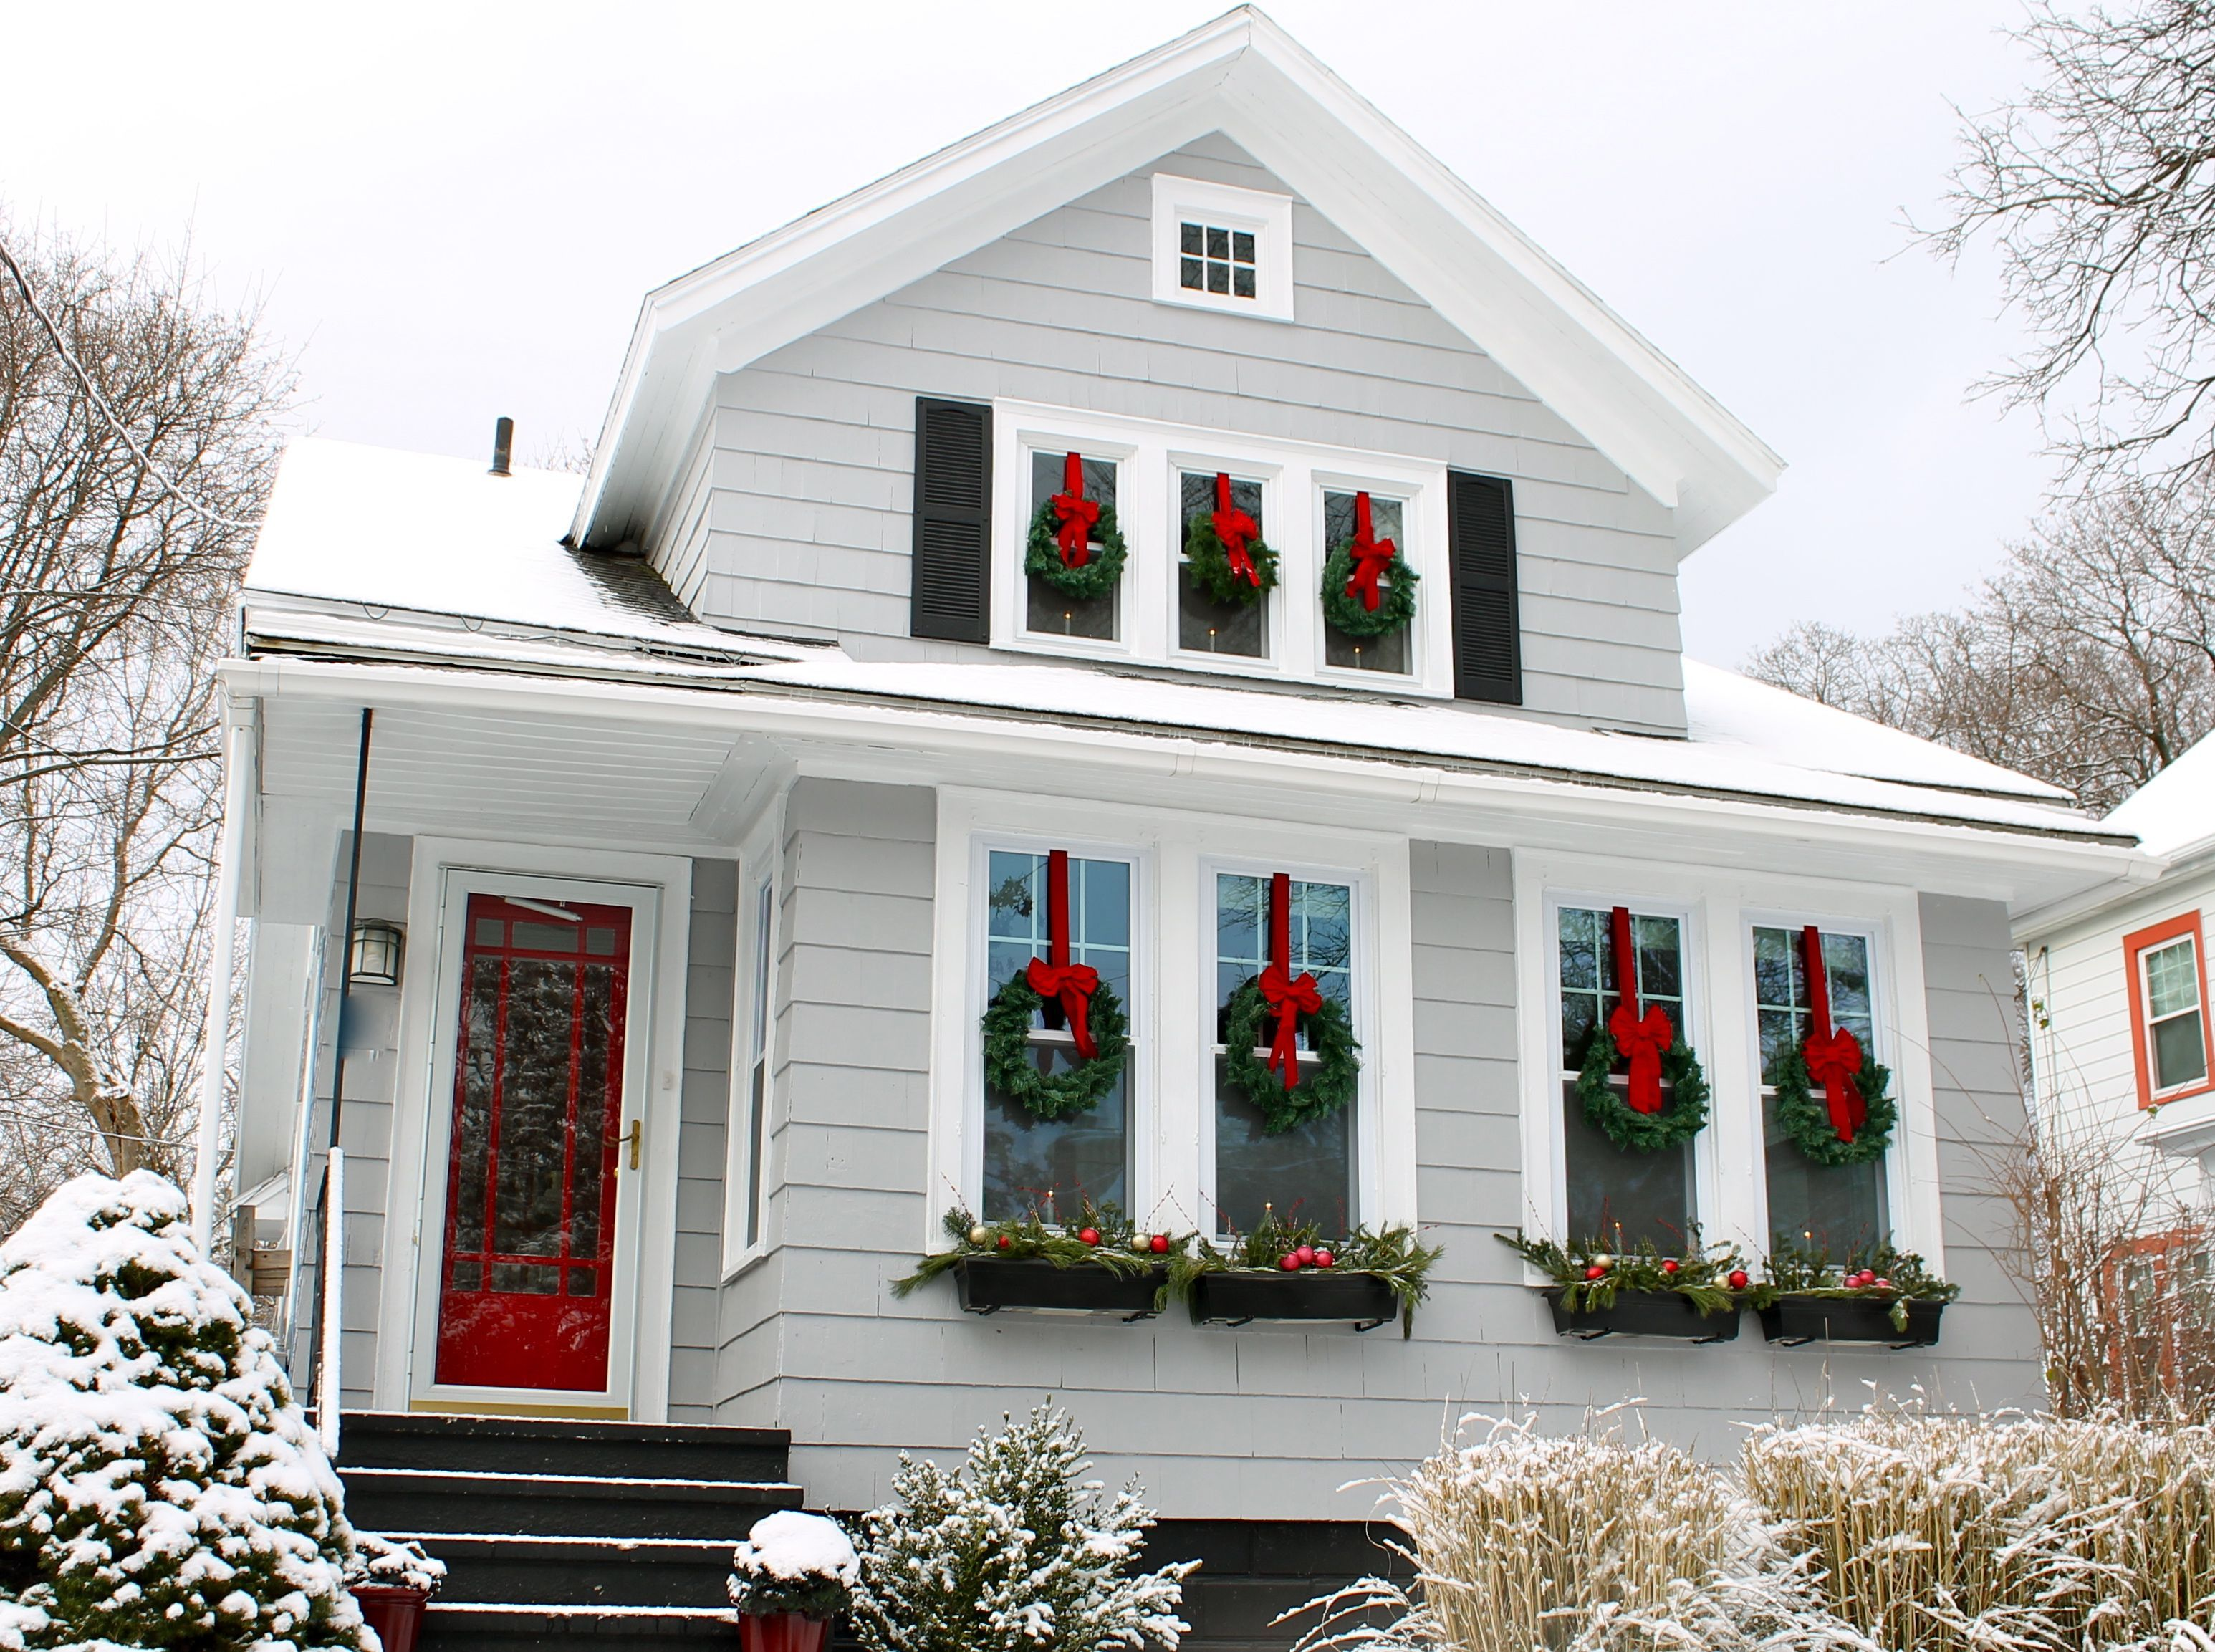 Holiday House | Christmas! | Pinterest | Wreaths, Window and Doors